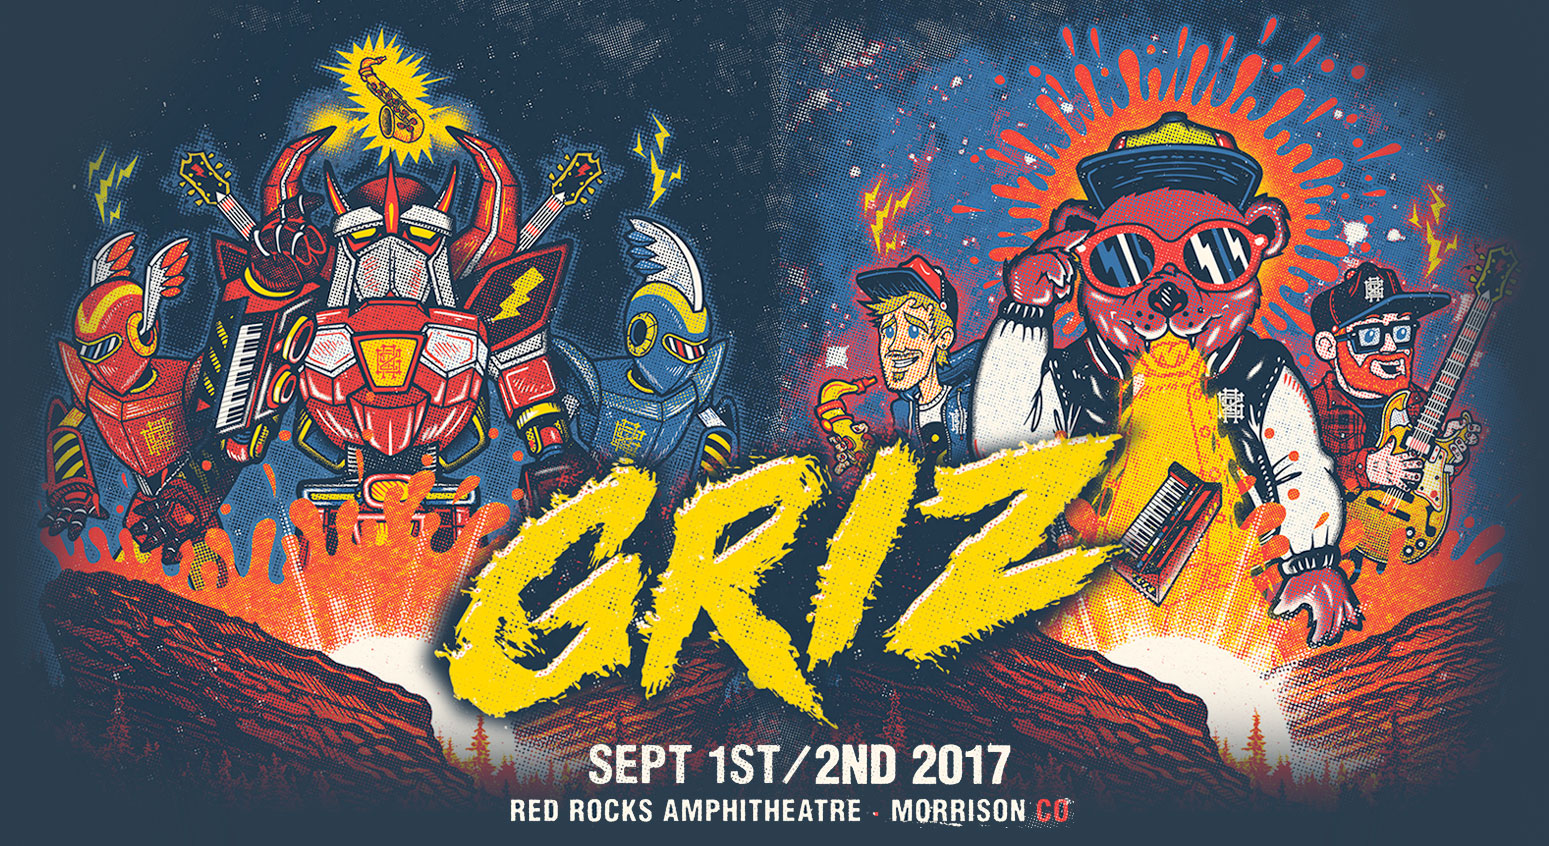 this year griz is unveiling a host of new additions to his signature red rocks run for the first time griz rocks is expanding to a jam filled 2 night